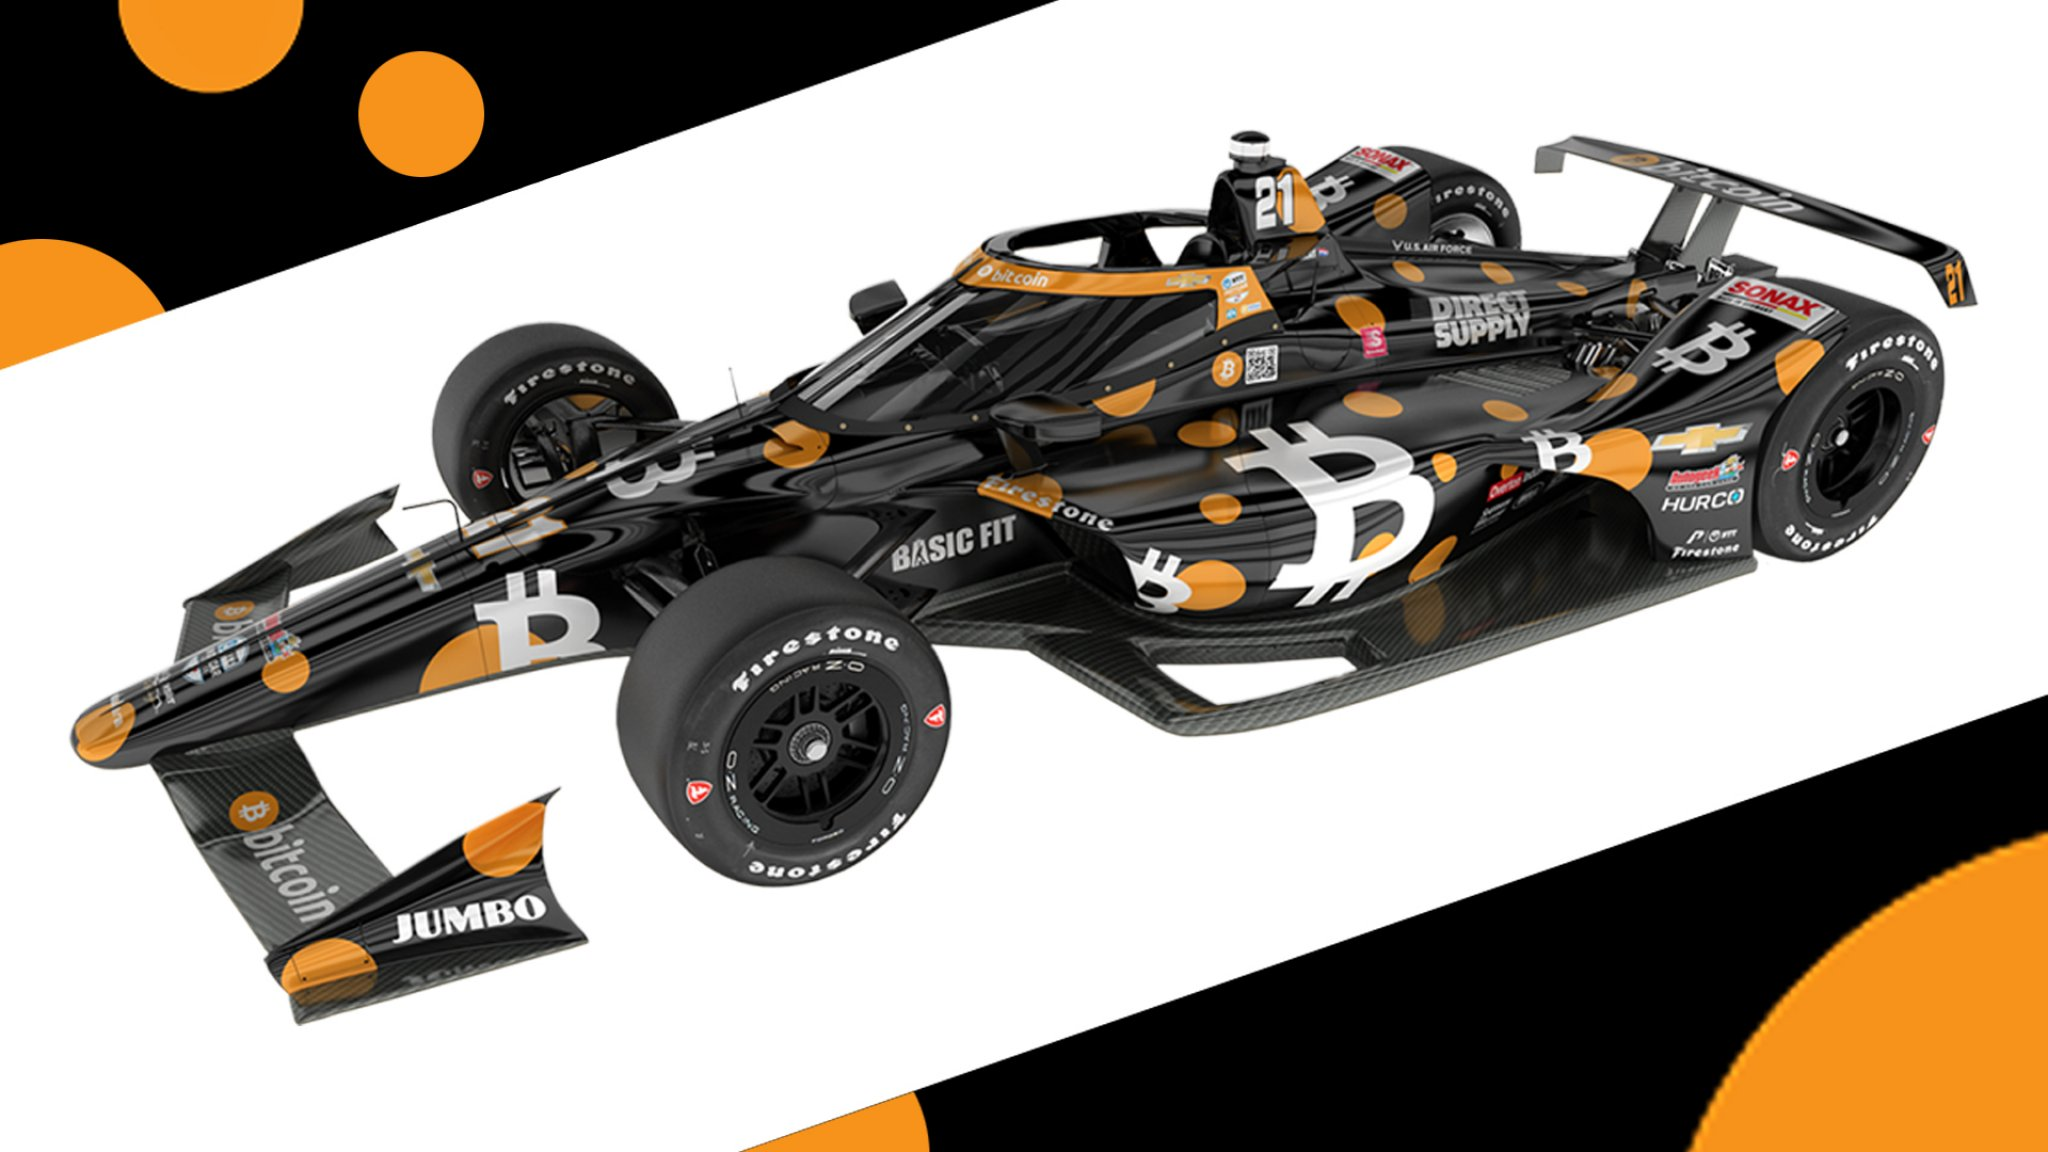 New colors for the fan like the match in the Indy 500